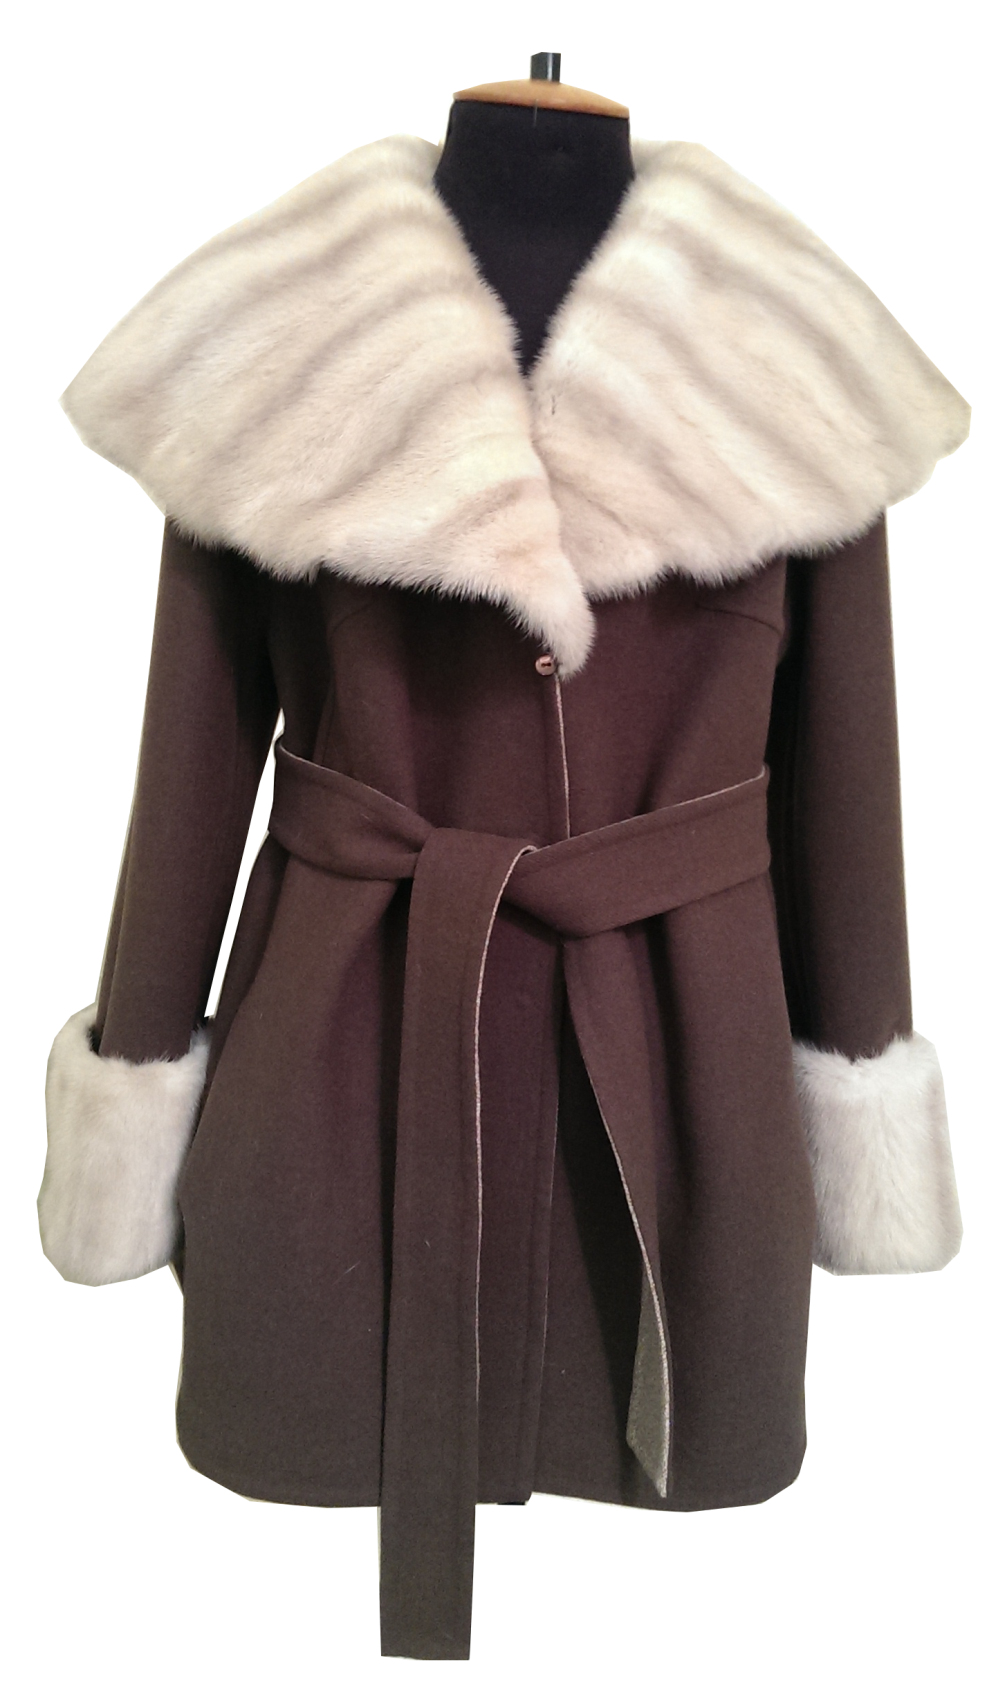 reversible_doublesided_wool_coat_with_oversized_mink_collar_and_mink_cuffs_remodeling_restyling_1000x1681